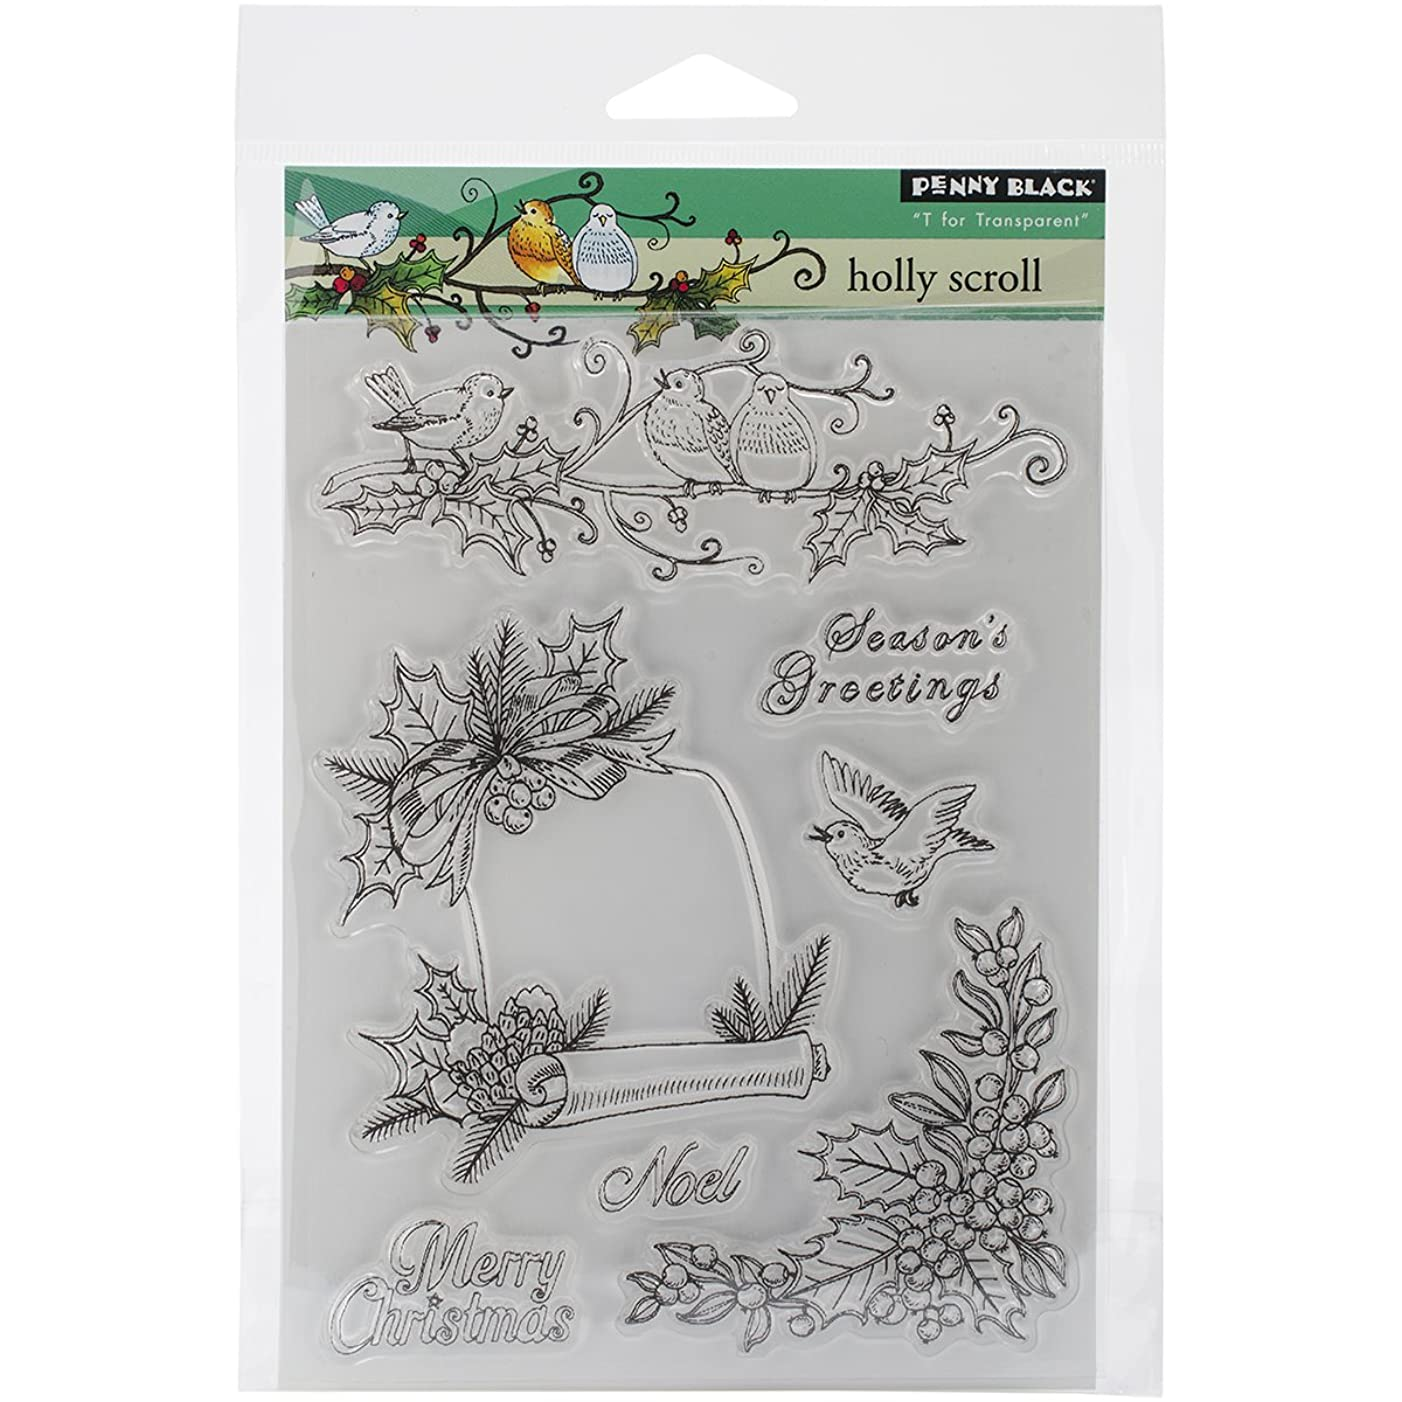 Penny Black 30-253 Decorative Rubber Stamps, Holly Scroll